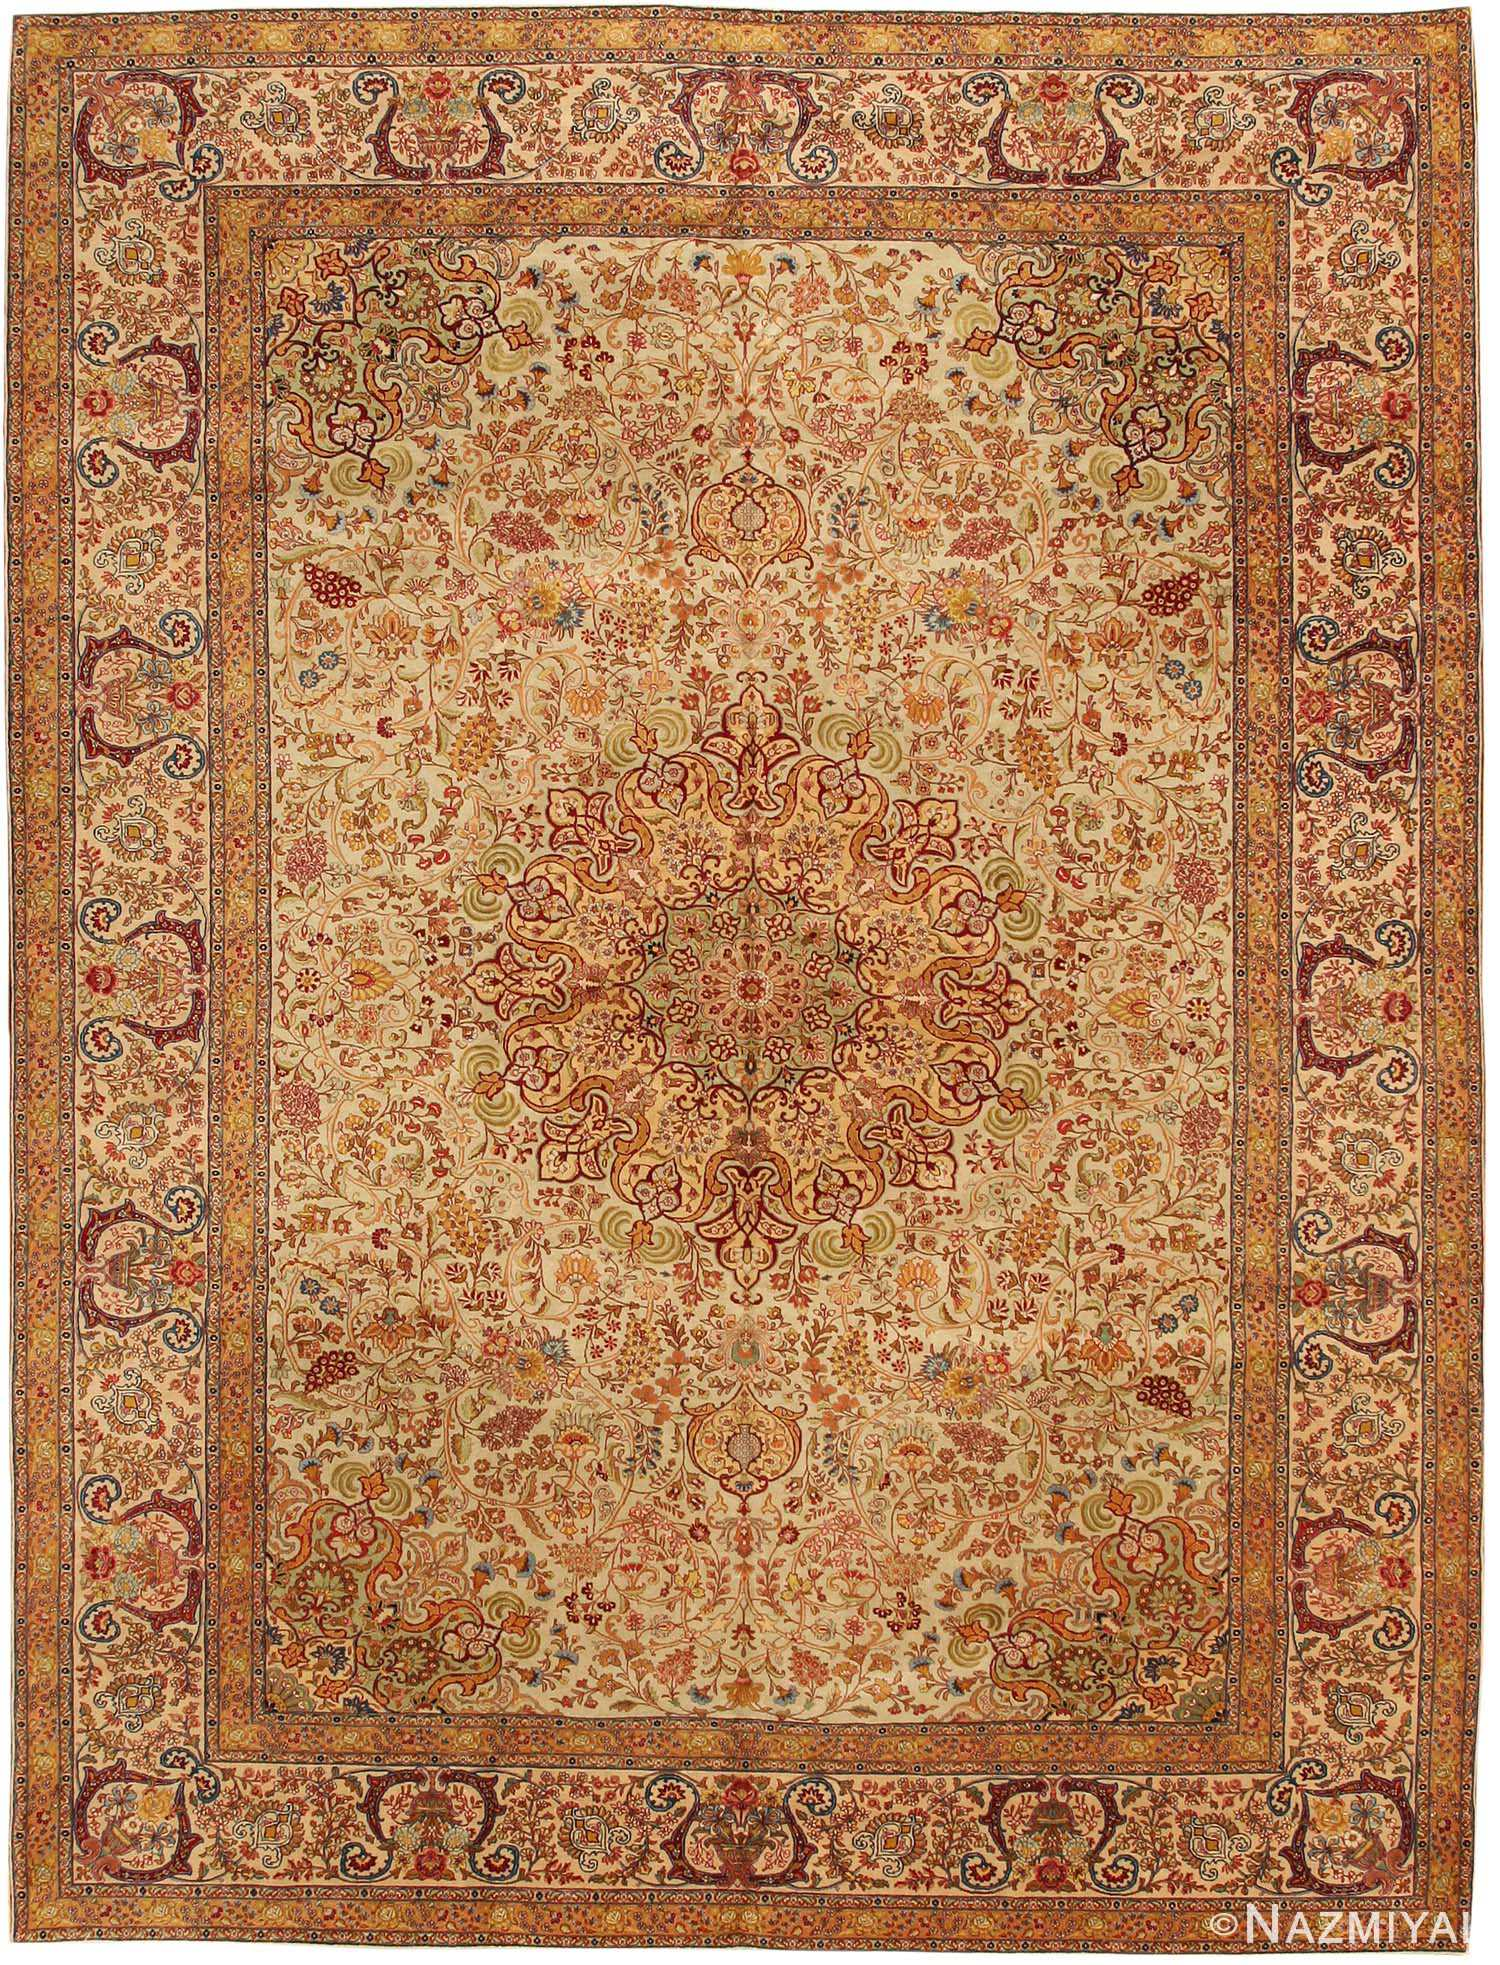 Tabriz Rug Antique Persian Carpet 7993 By Nazmiyal Nyc